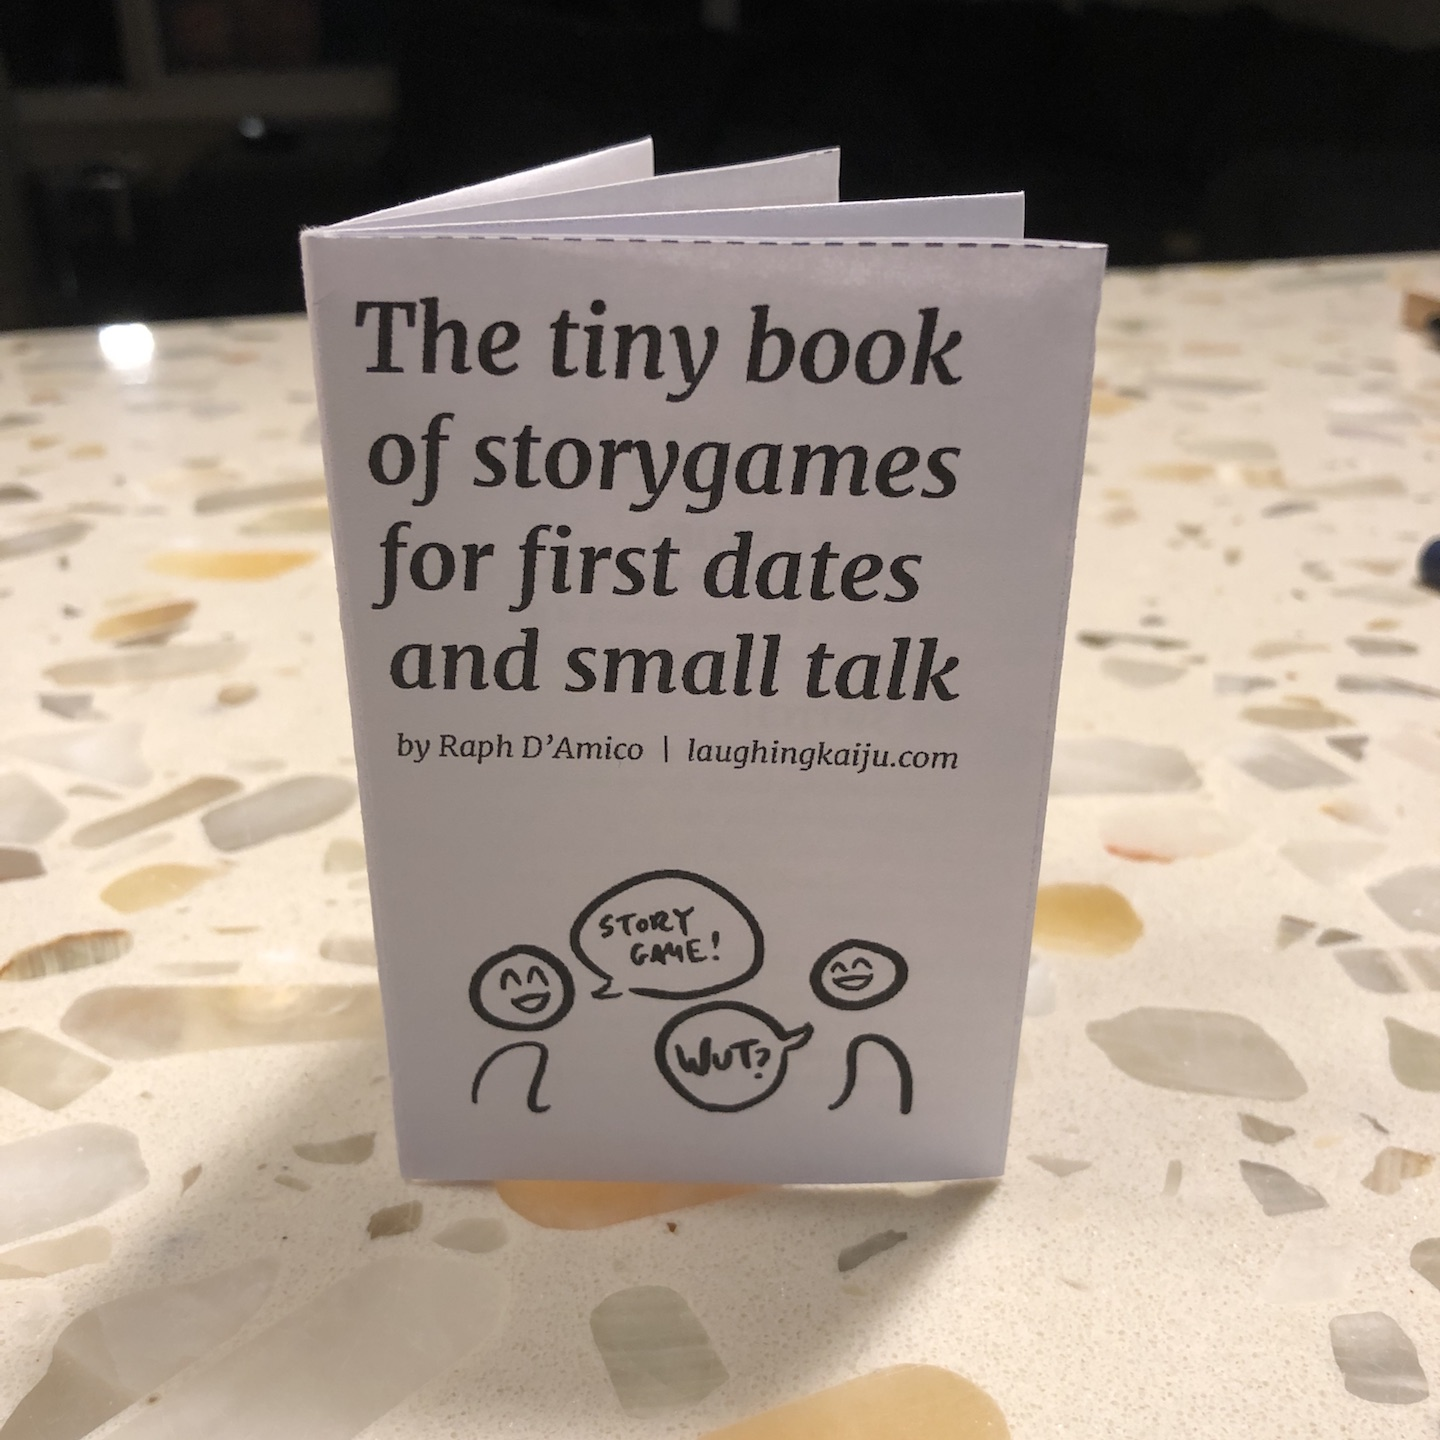 The tiny book of first date storygames